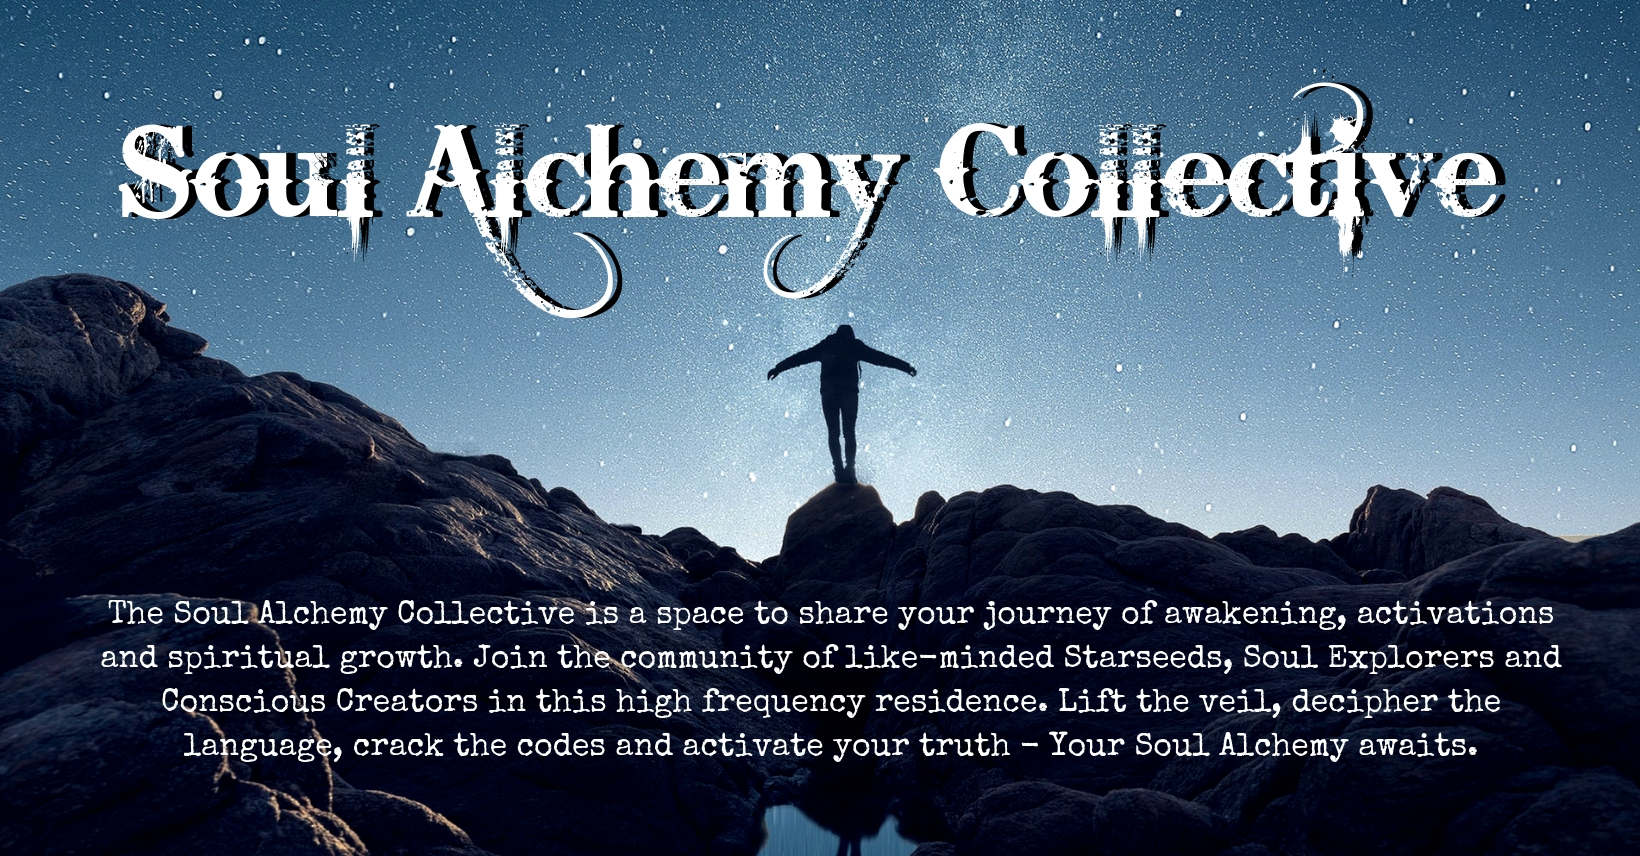 MM_Soul Alchemy Collective_for website.jpg